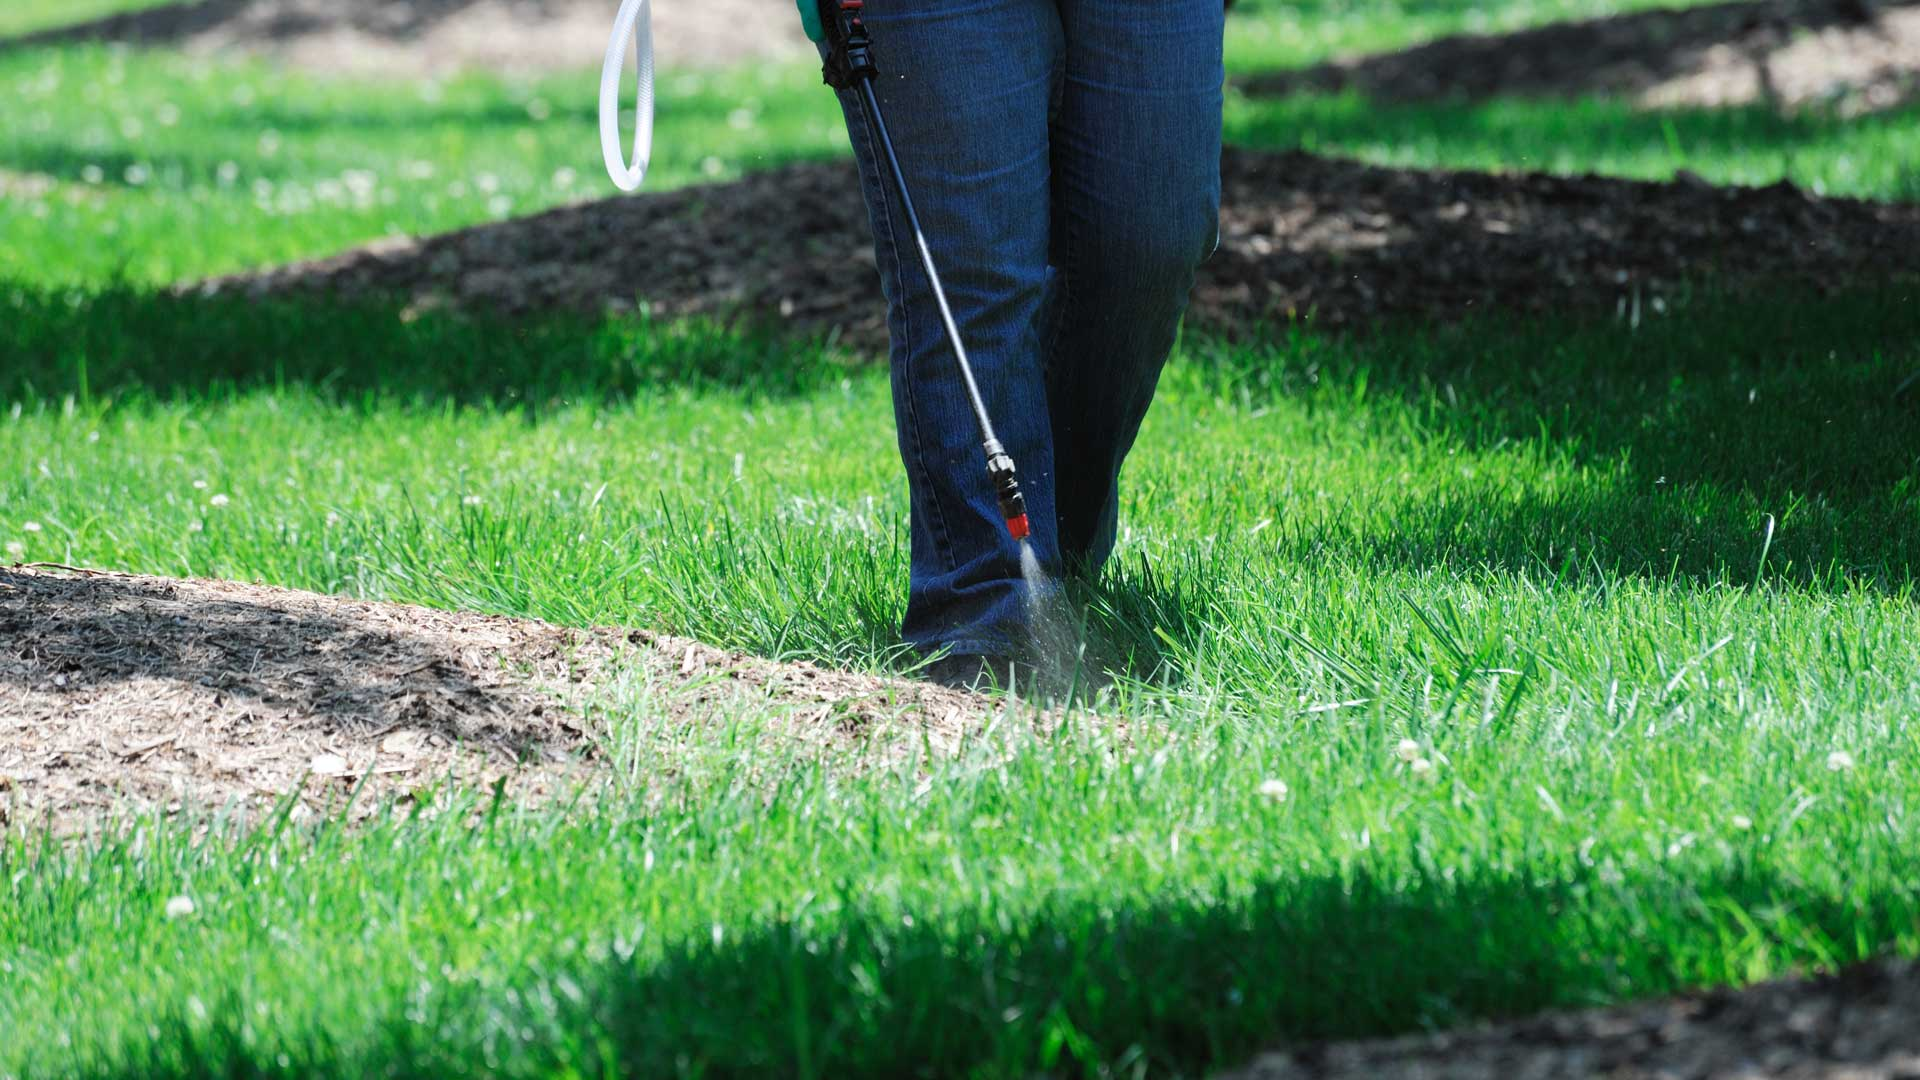 Weed control for contractors, professional weed management, weed control equipment for contractors, weed spraying equipment